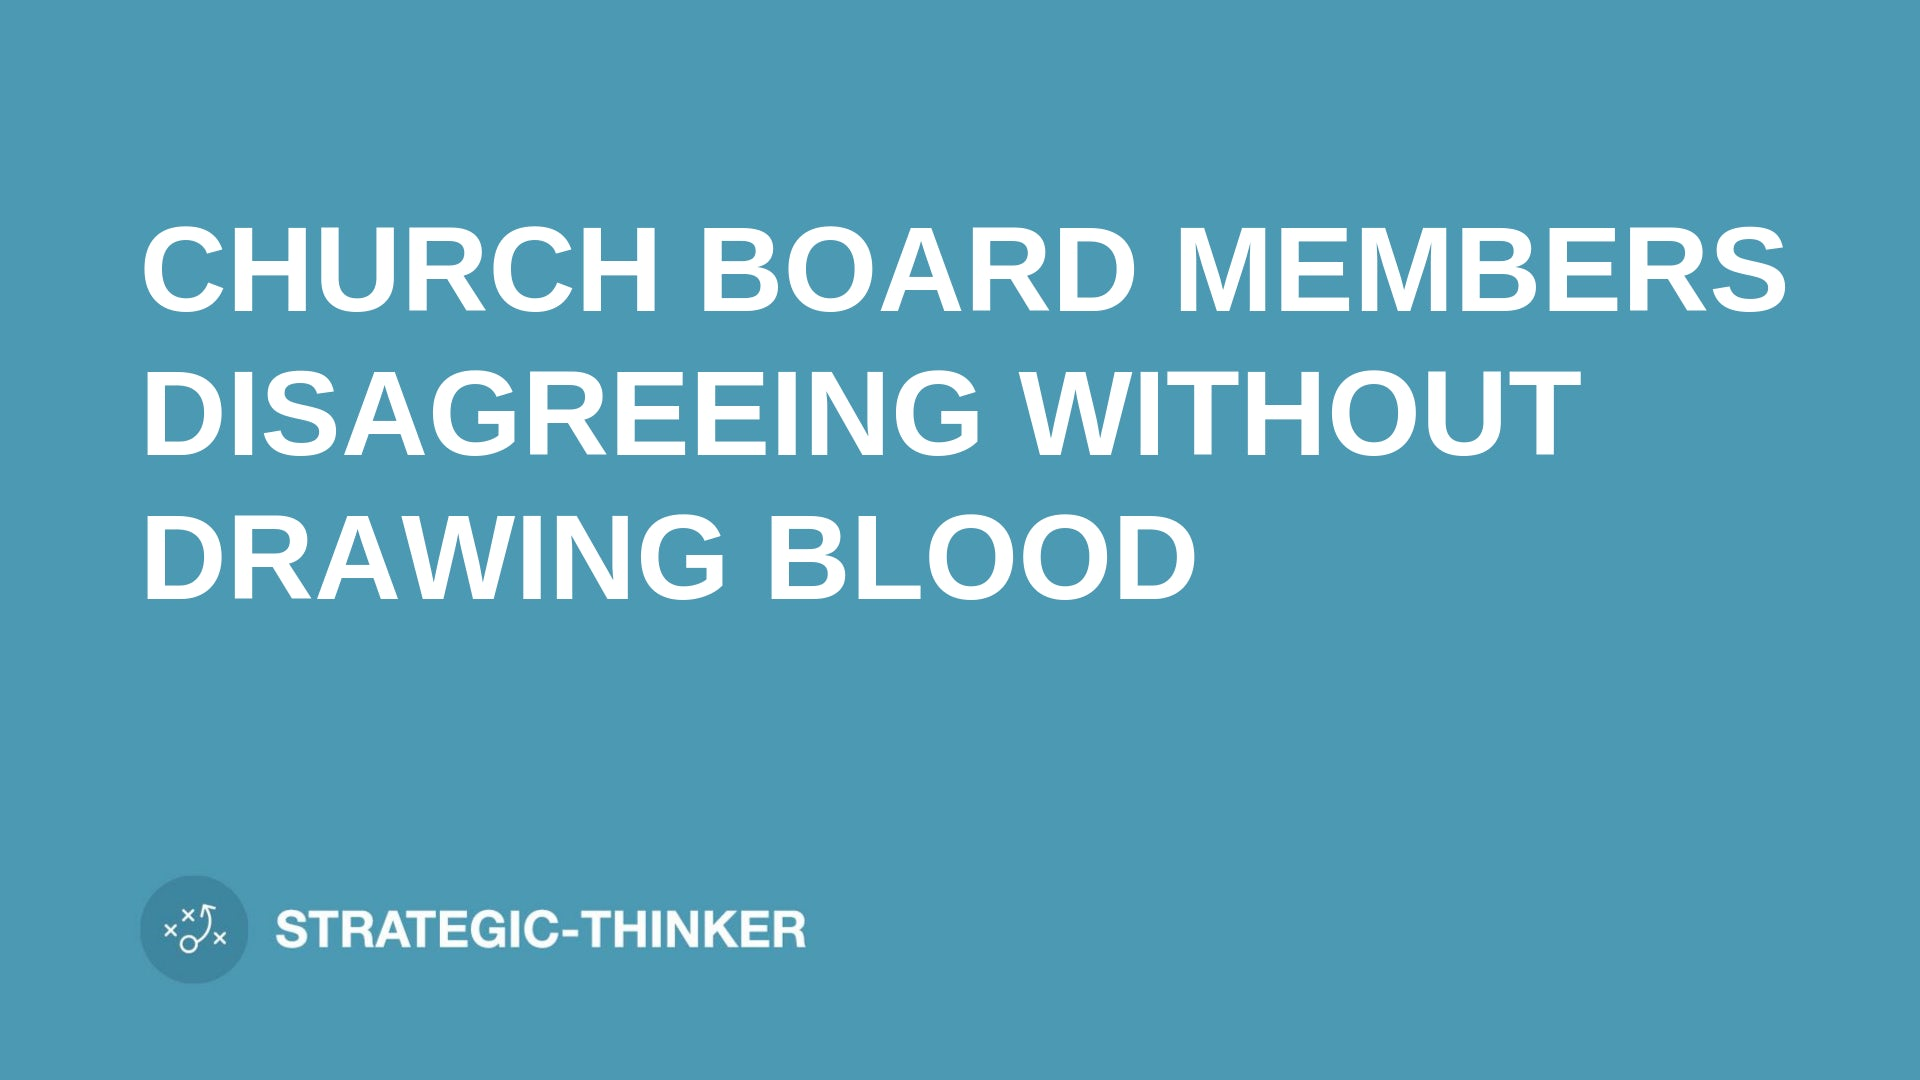 "text ""CHURCH BOARD MEMBERS DISAGREEING"" on blue background leaders.church"